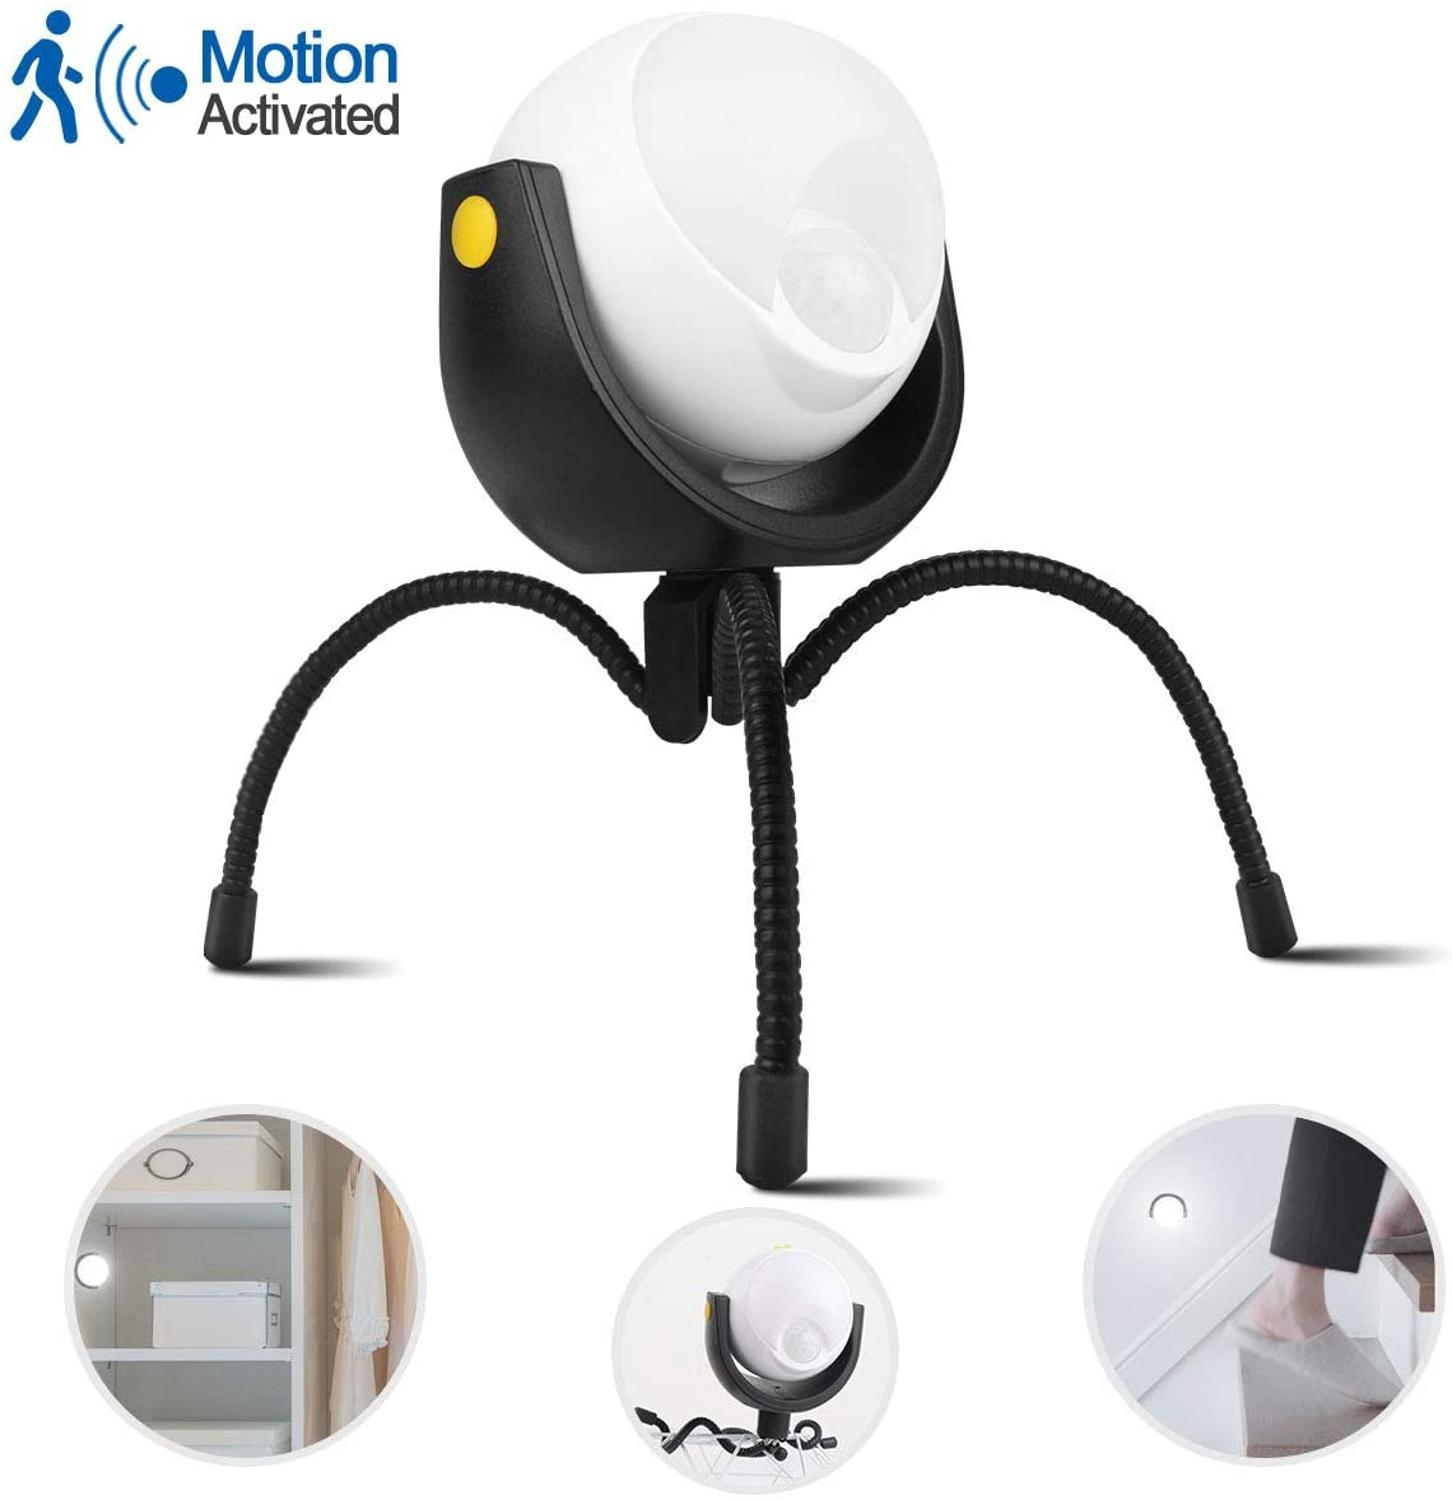 Led Outdoor Light 360 Degree Motion Sensor Bright Lights With Multi-function Tripod Flexible Claws